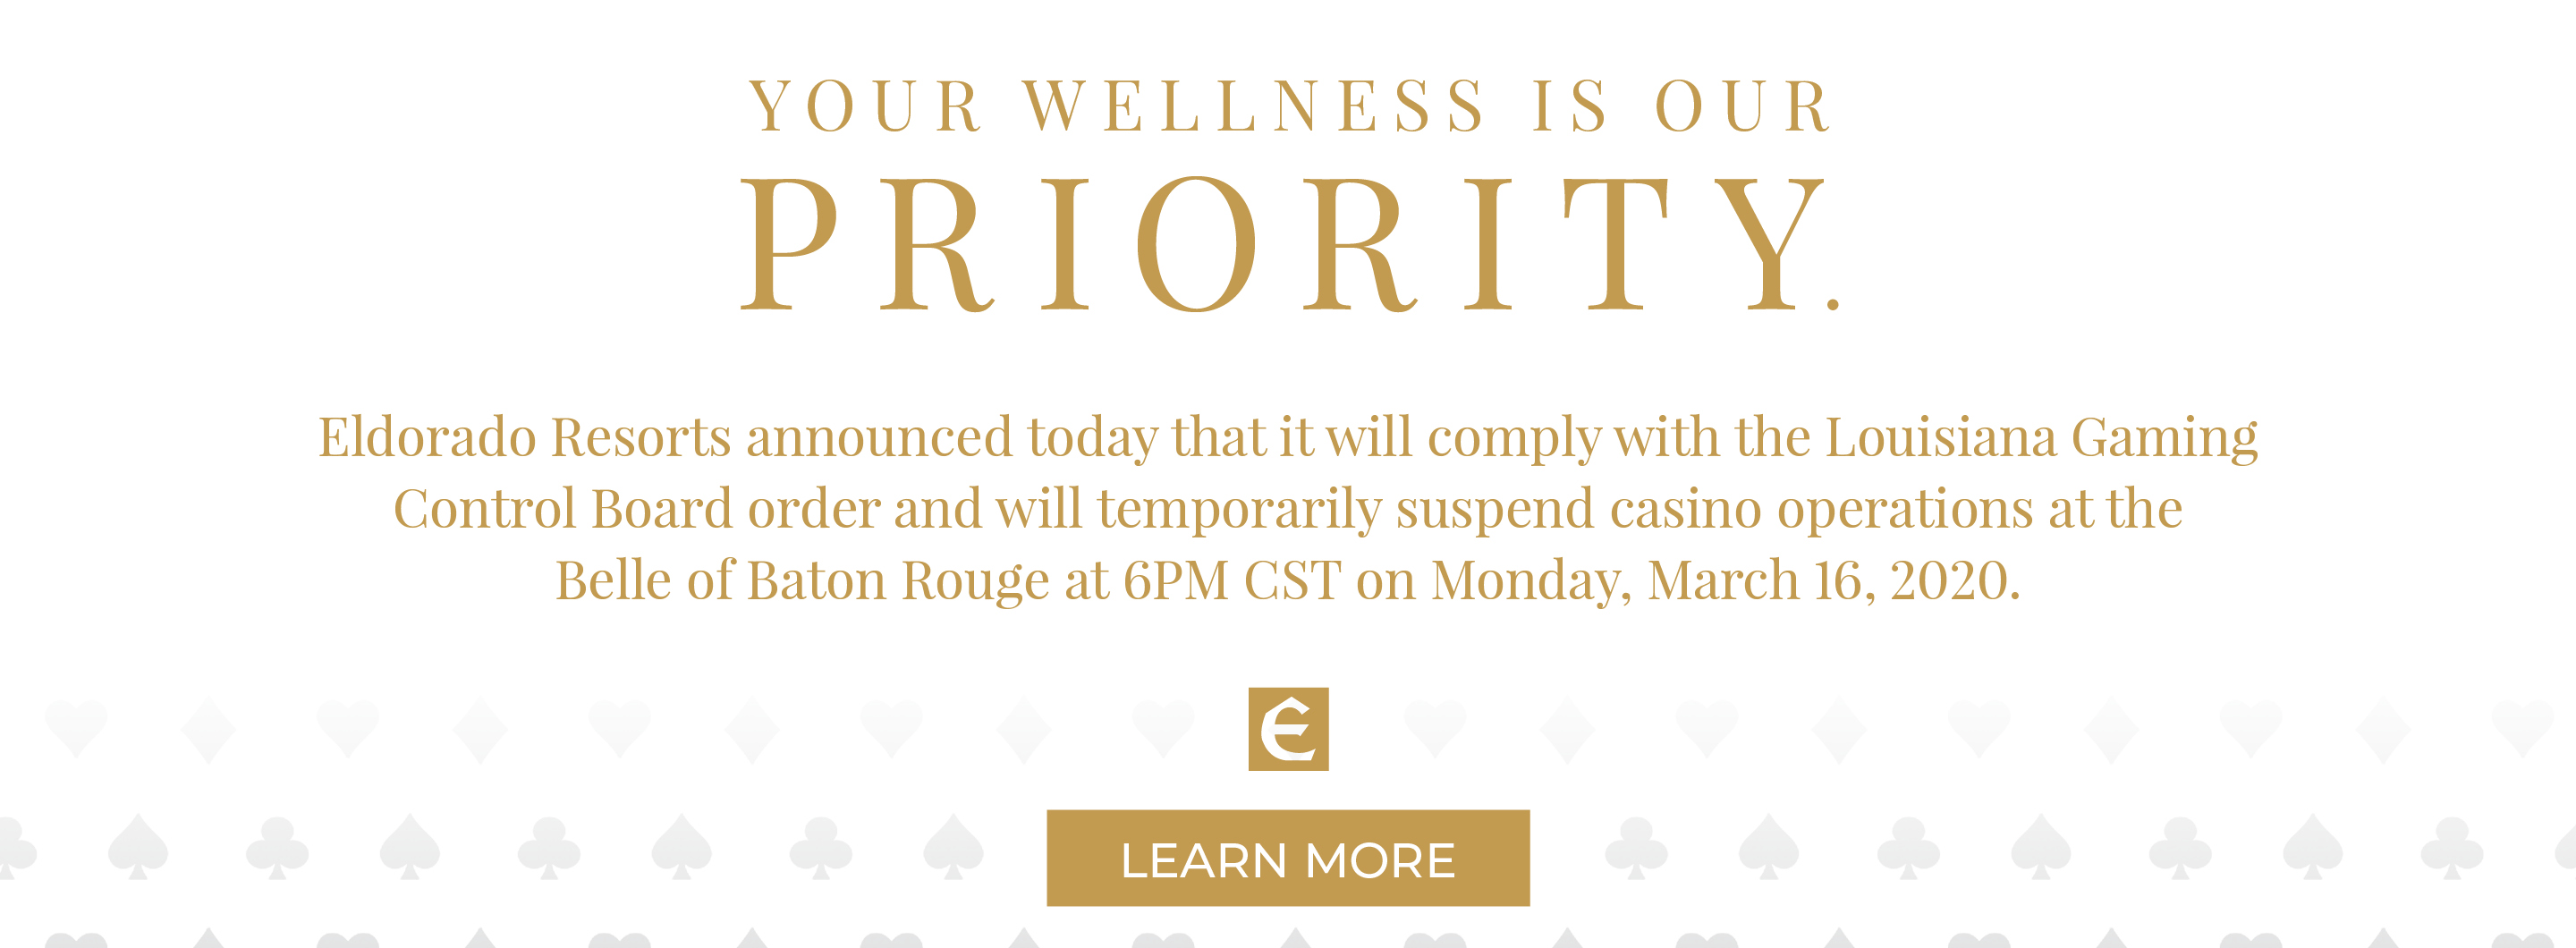 We will temporarily suspend operations at the Belle of Baton Rouge at 6PM CST on Monday, March 16, 2020